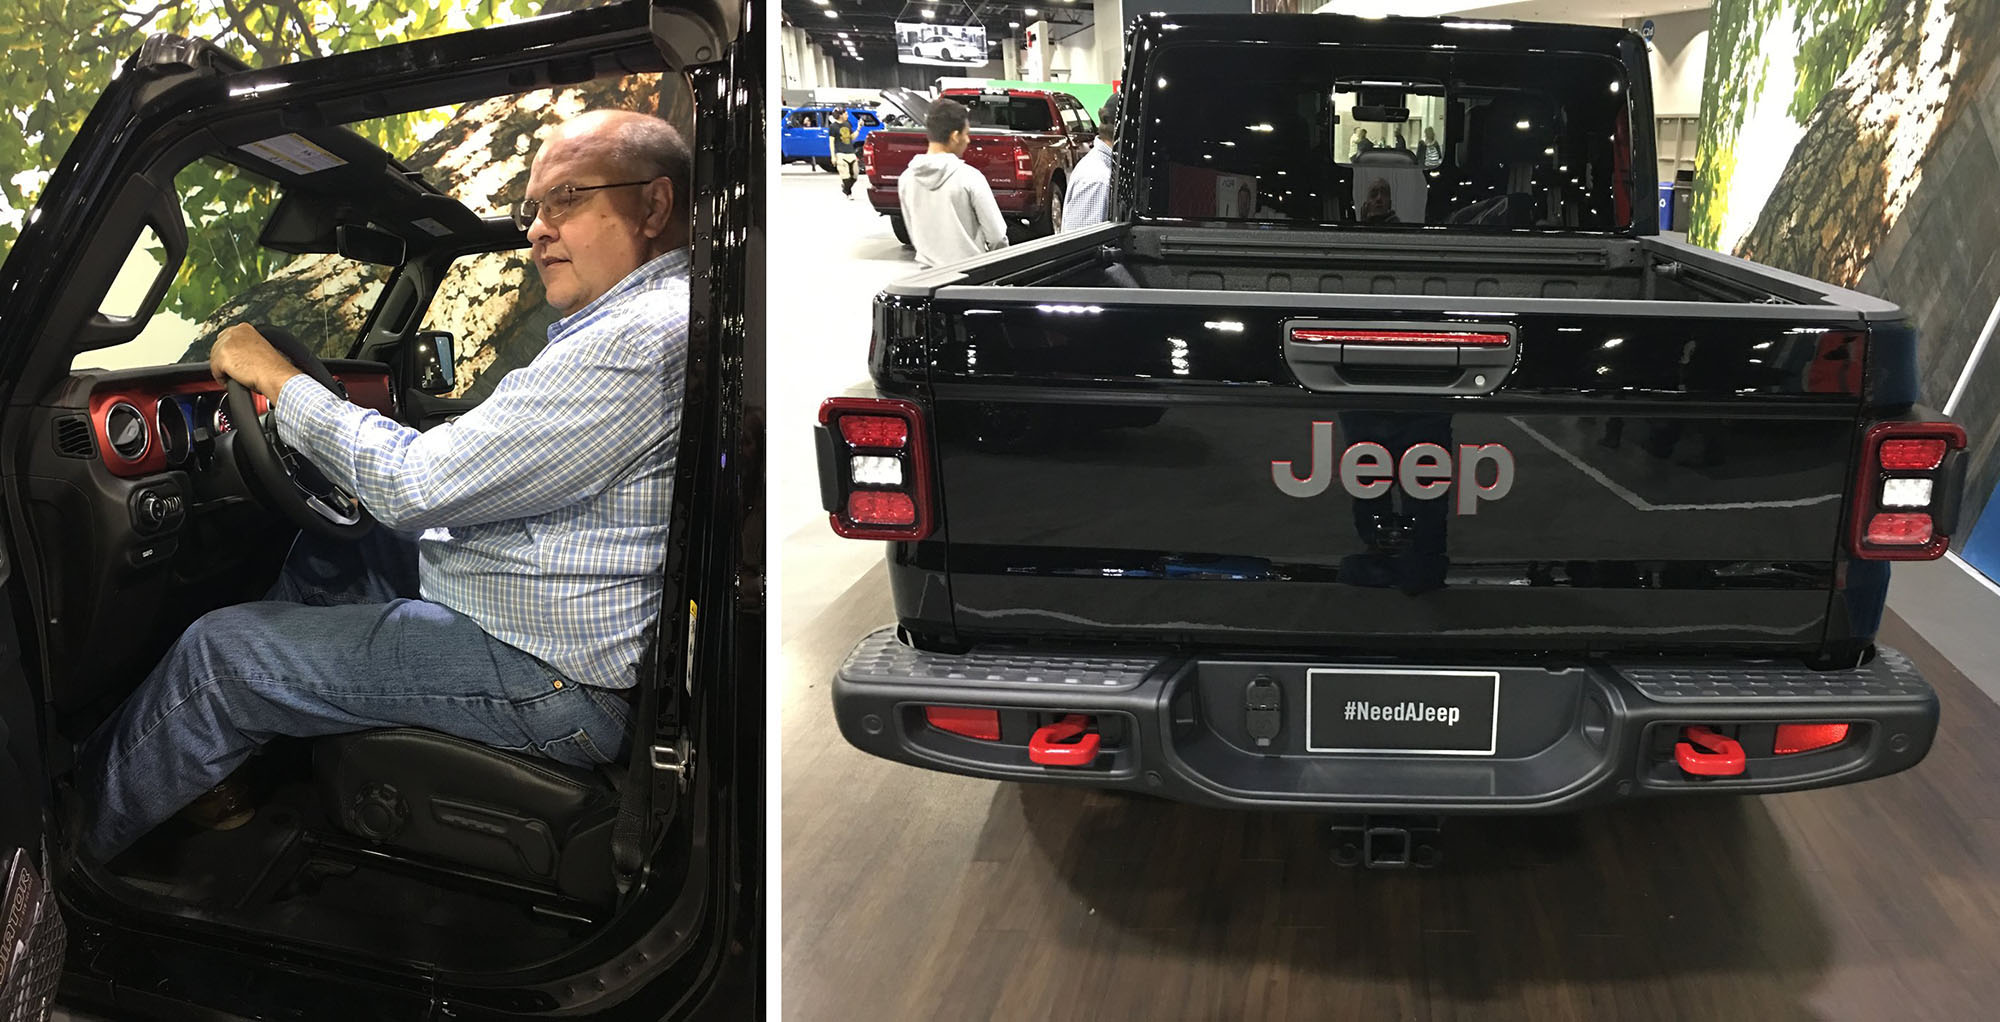 Pics: Seat Time in Jeep Gladiator at Atlanta Auto Show ...